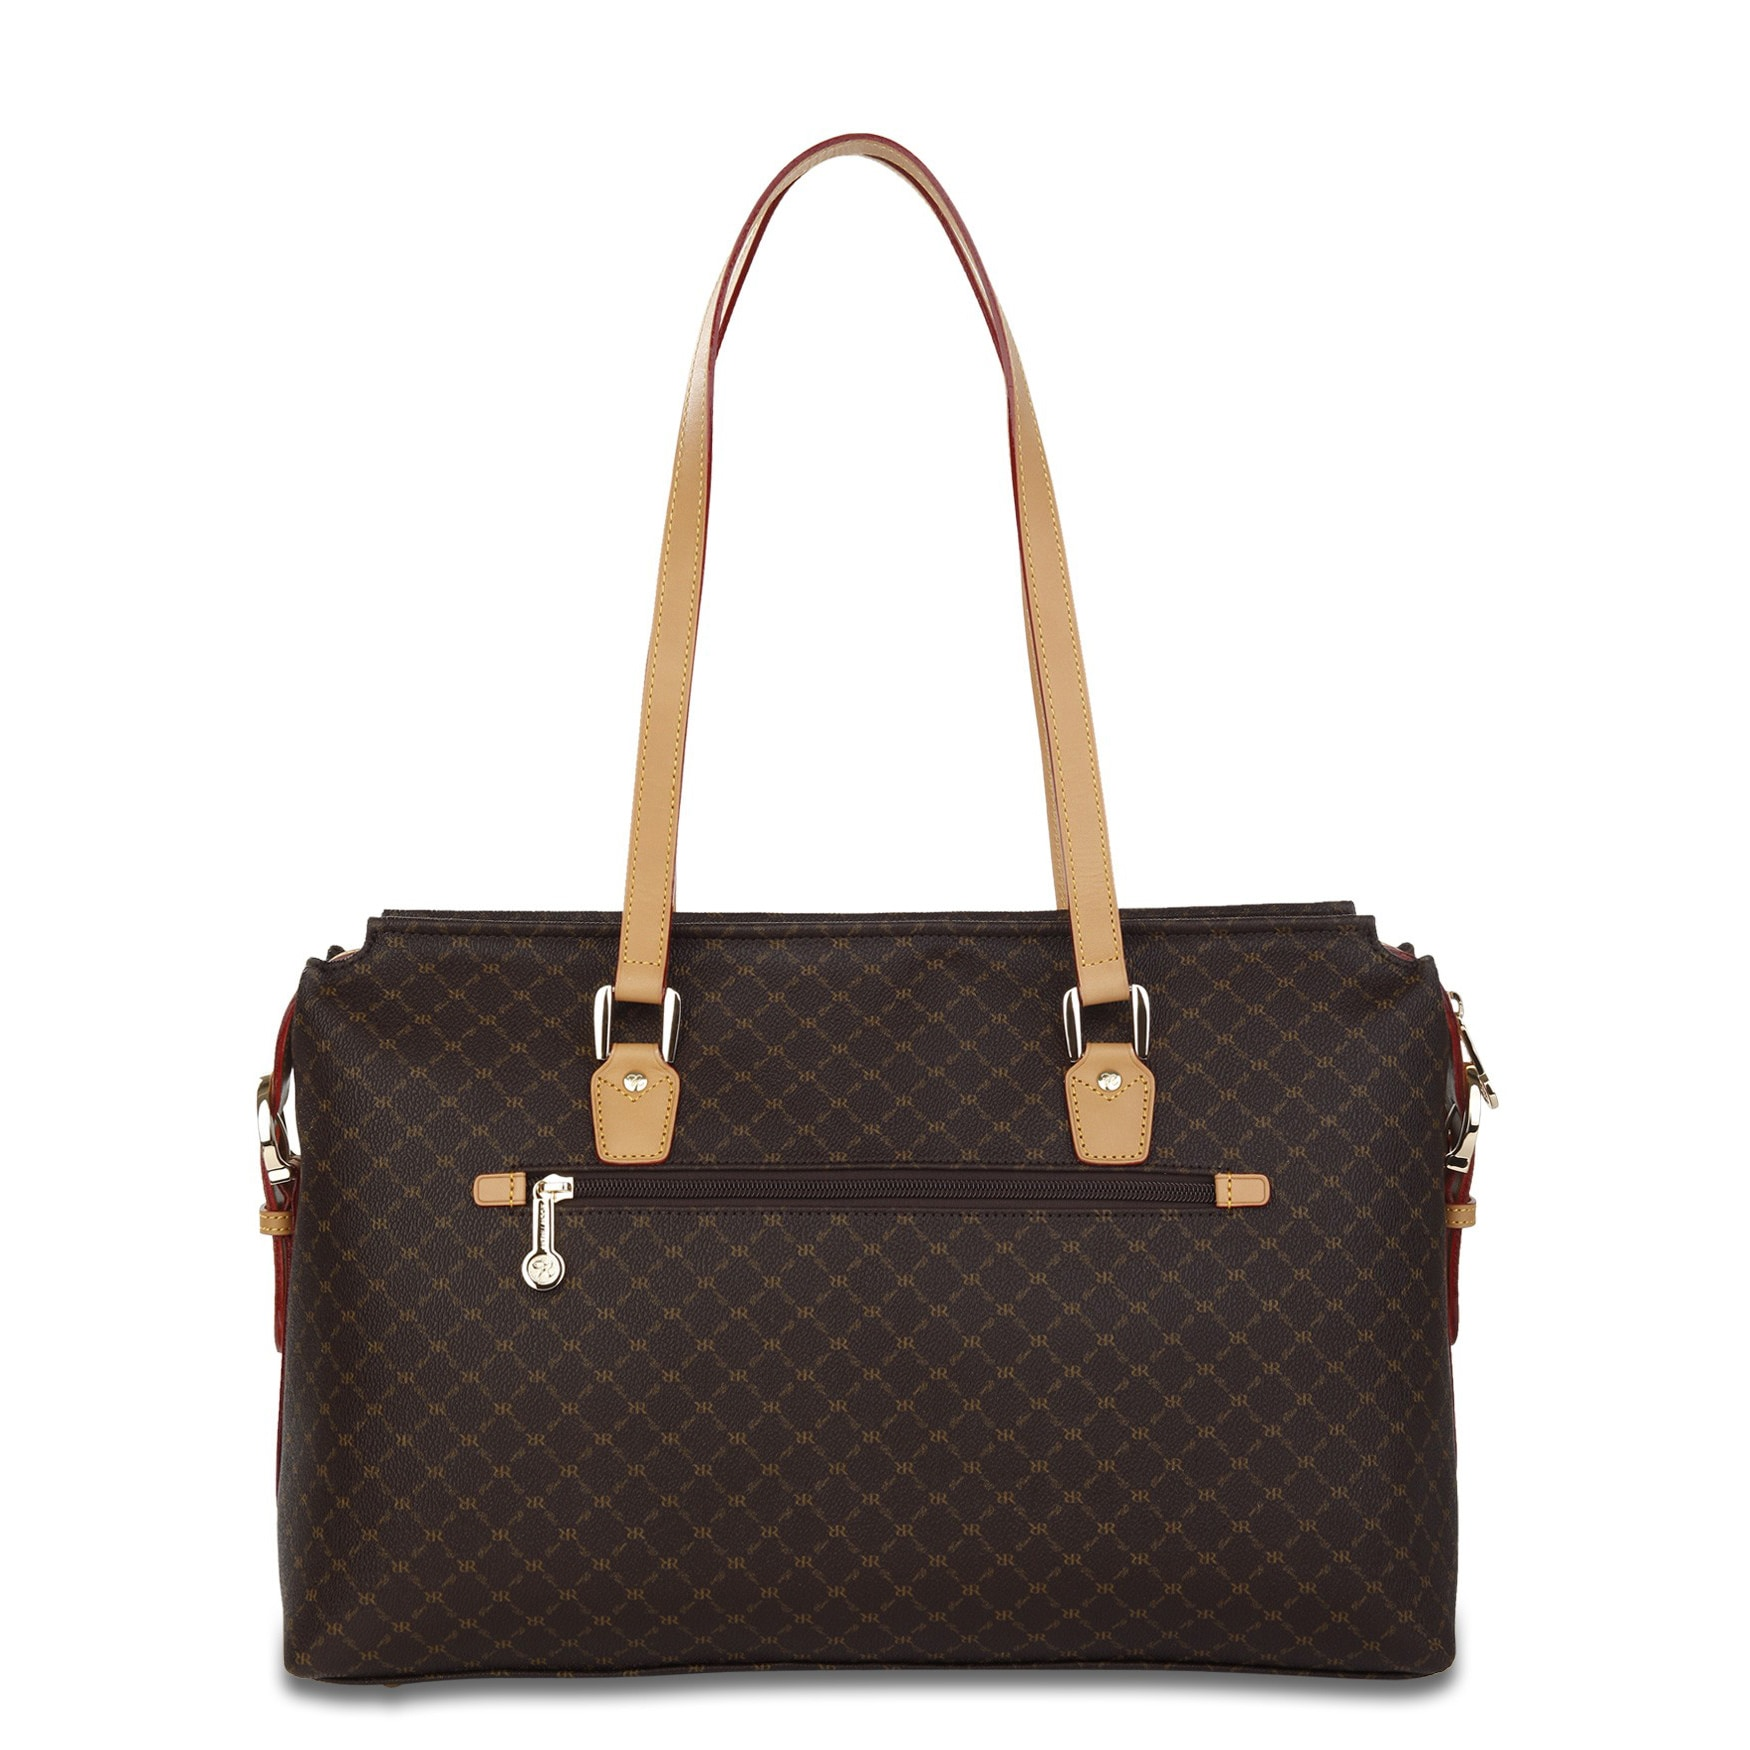 Rioni Signature Tote Traveler Bag Free Shipping Today 4386730